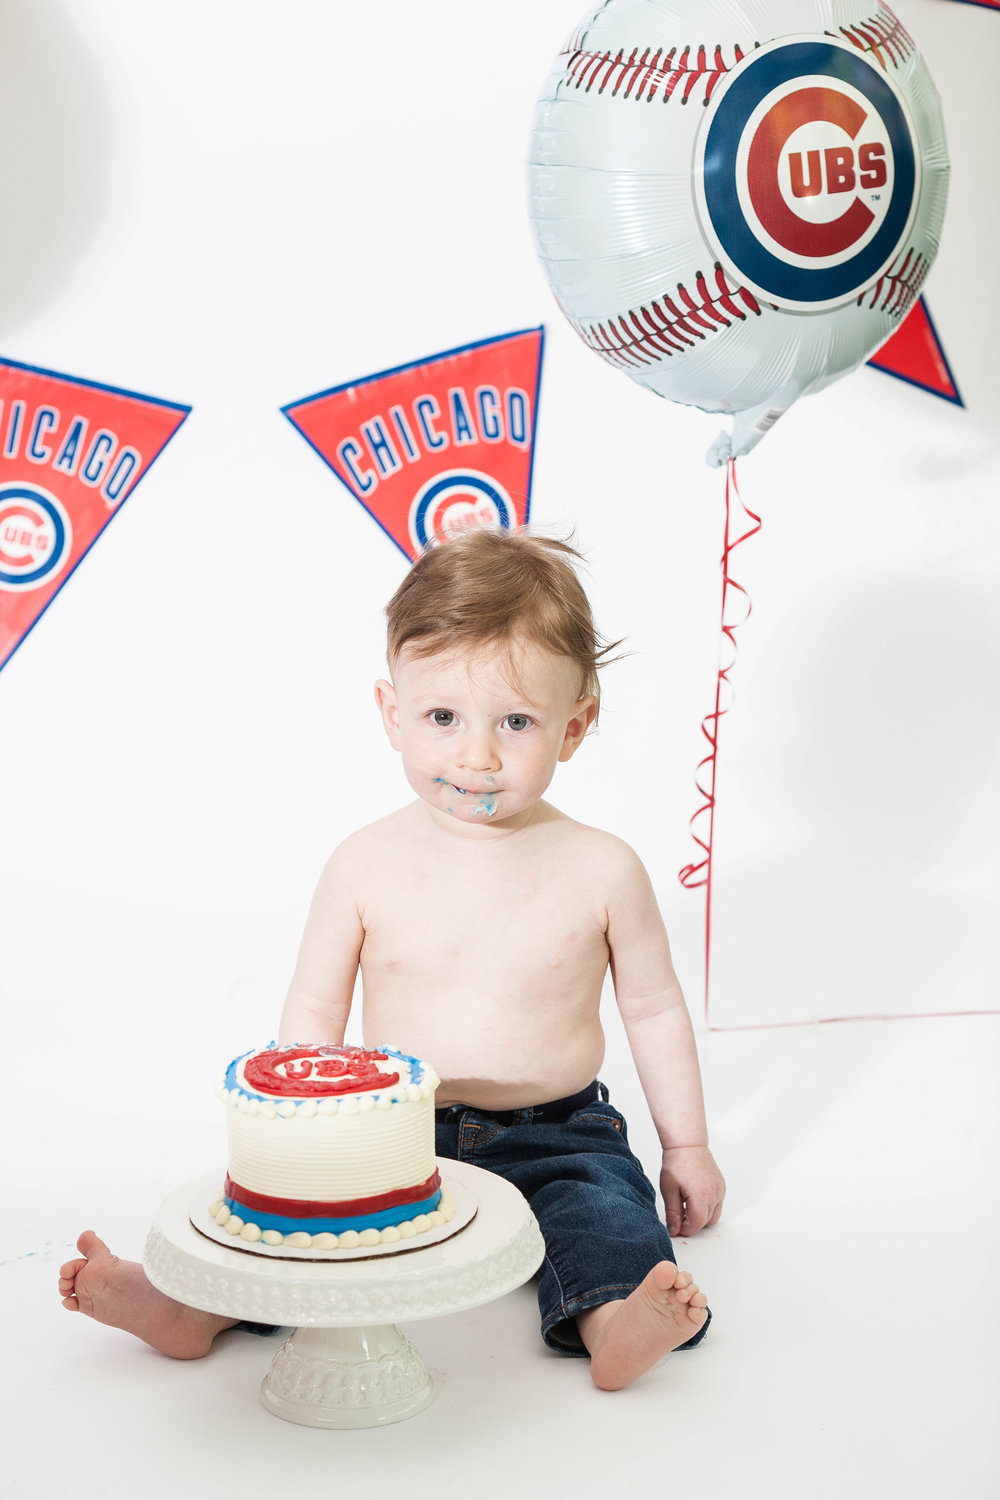 chicago cubs themed cake smash session